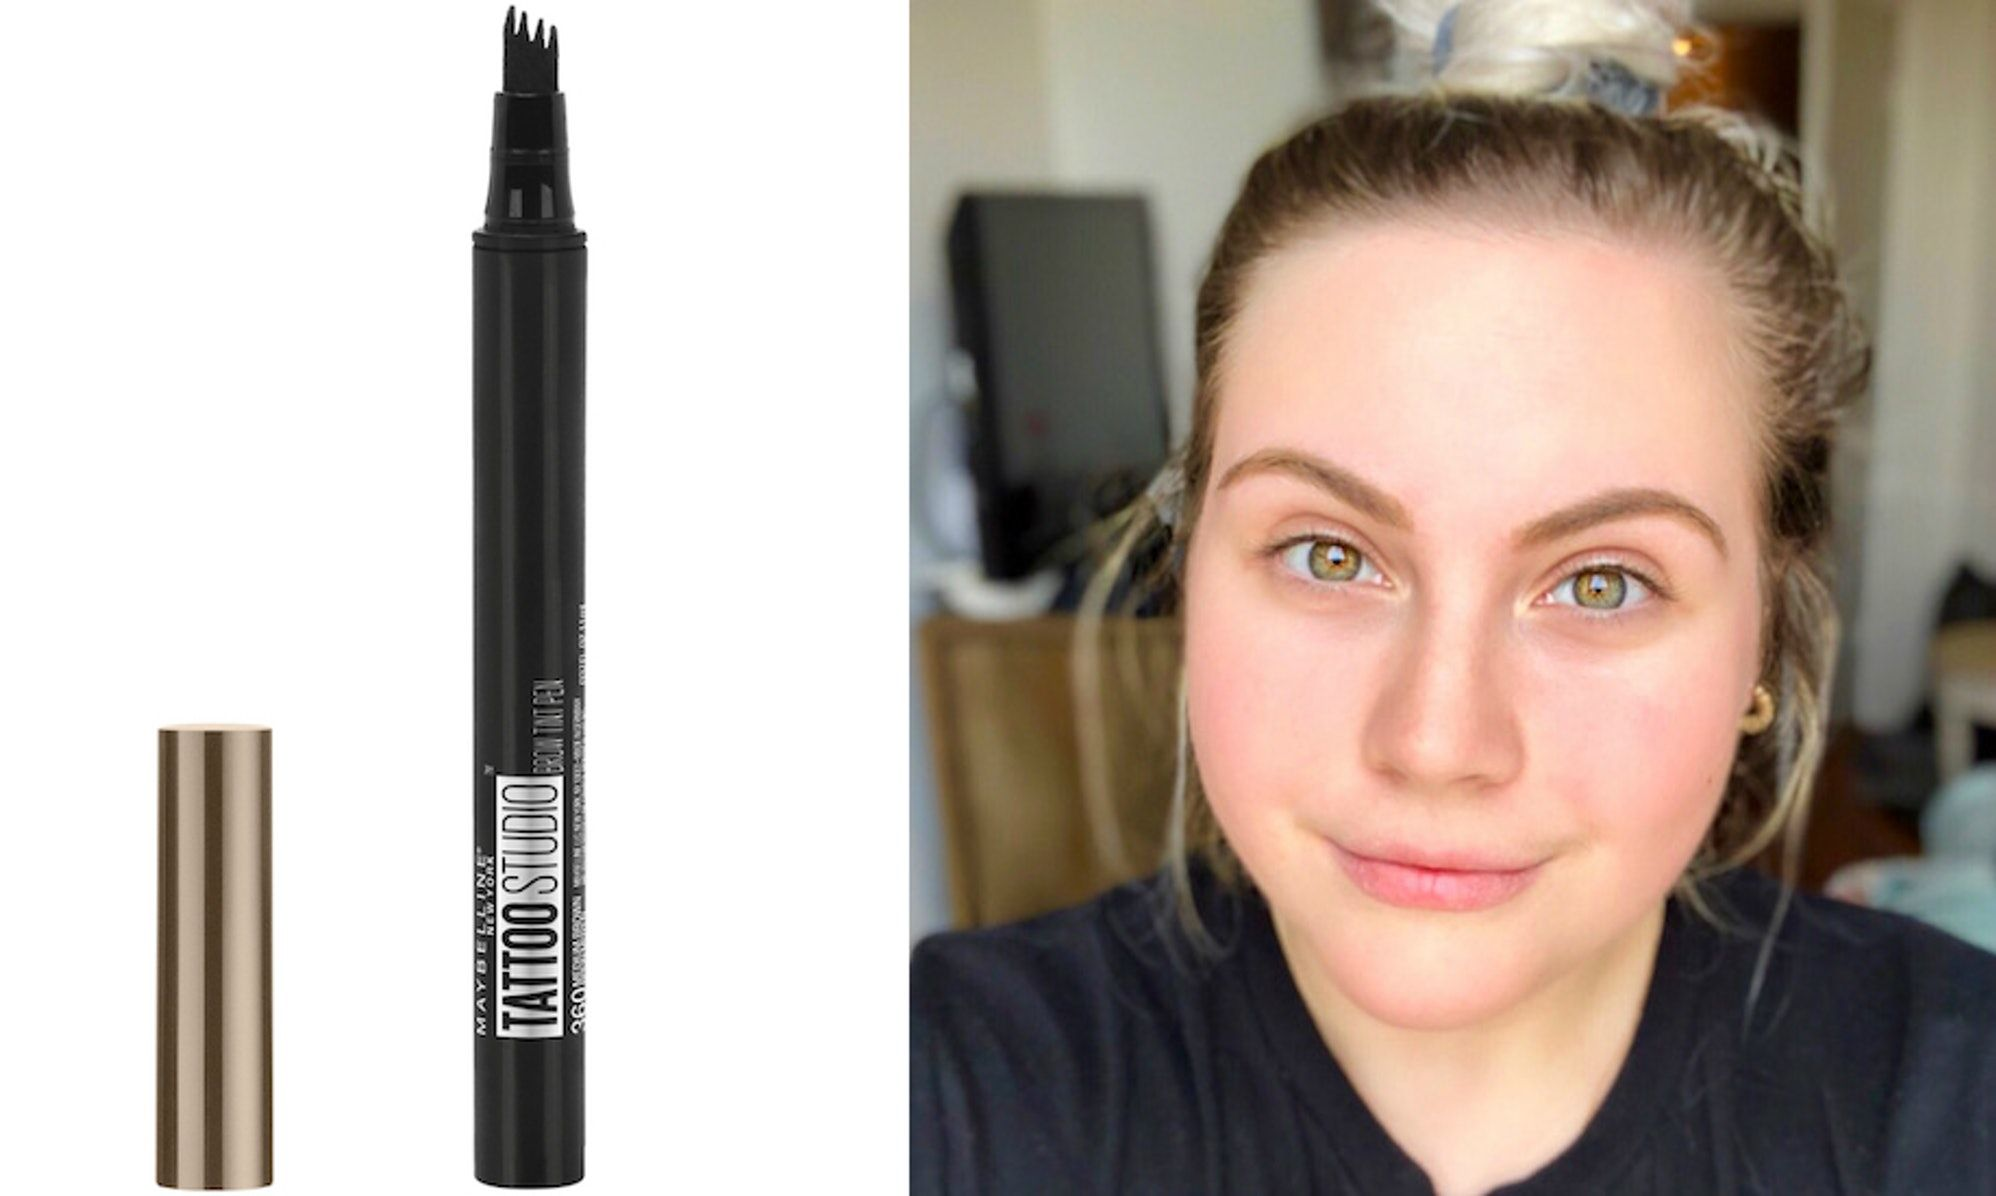 I Tried Maybelline's Tattoo Studio Brow Tint Pen & It's